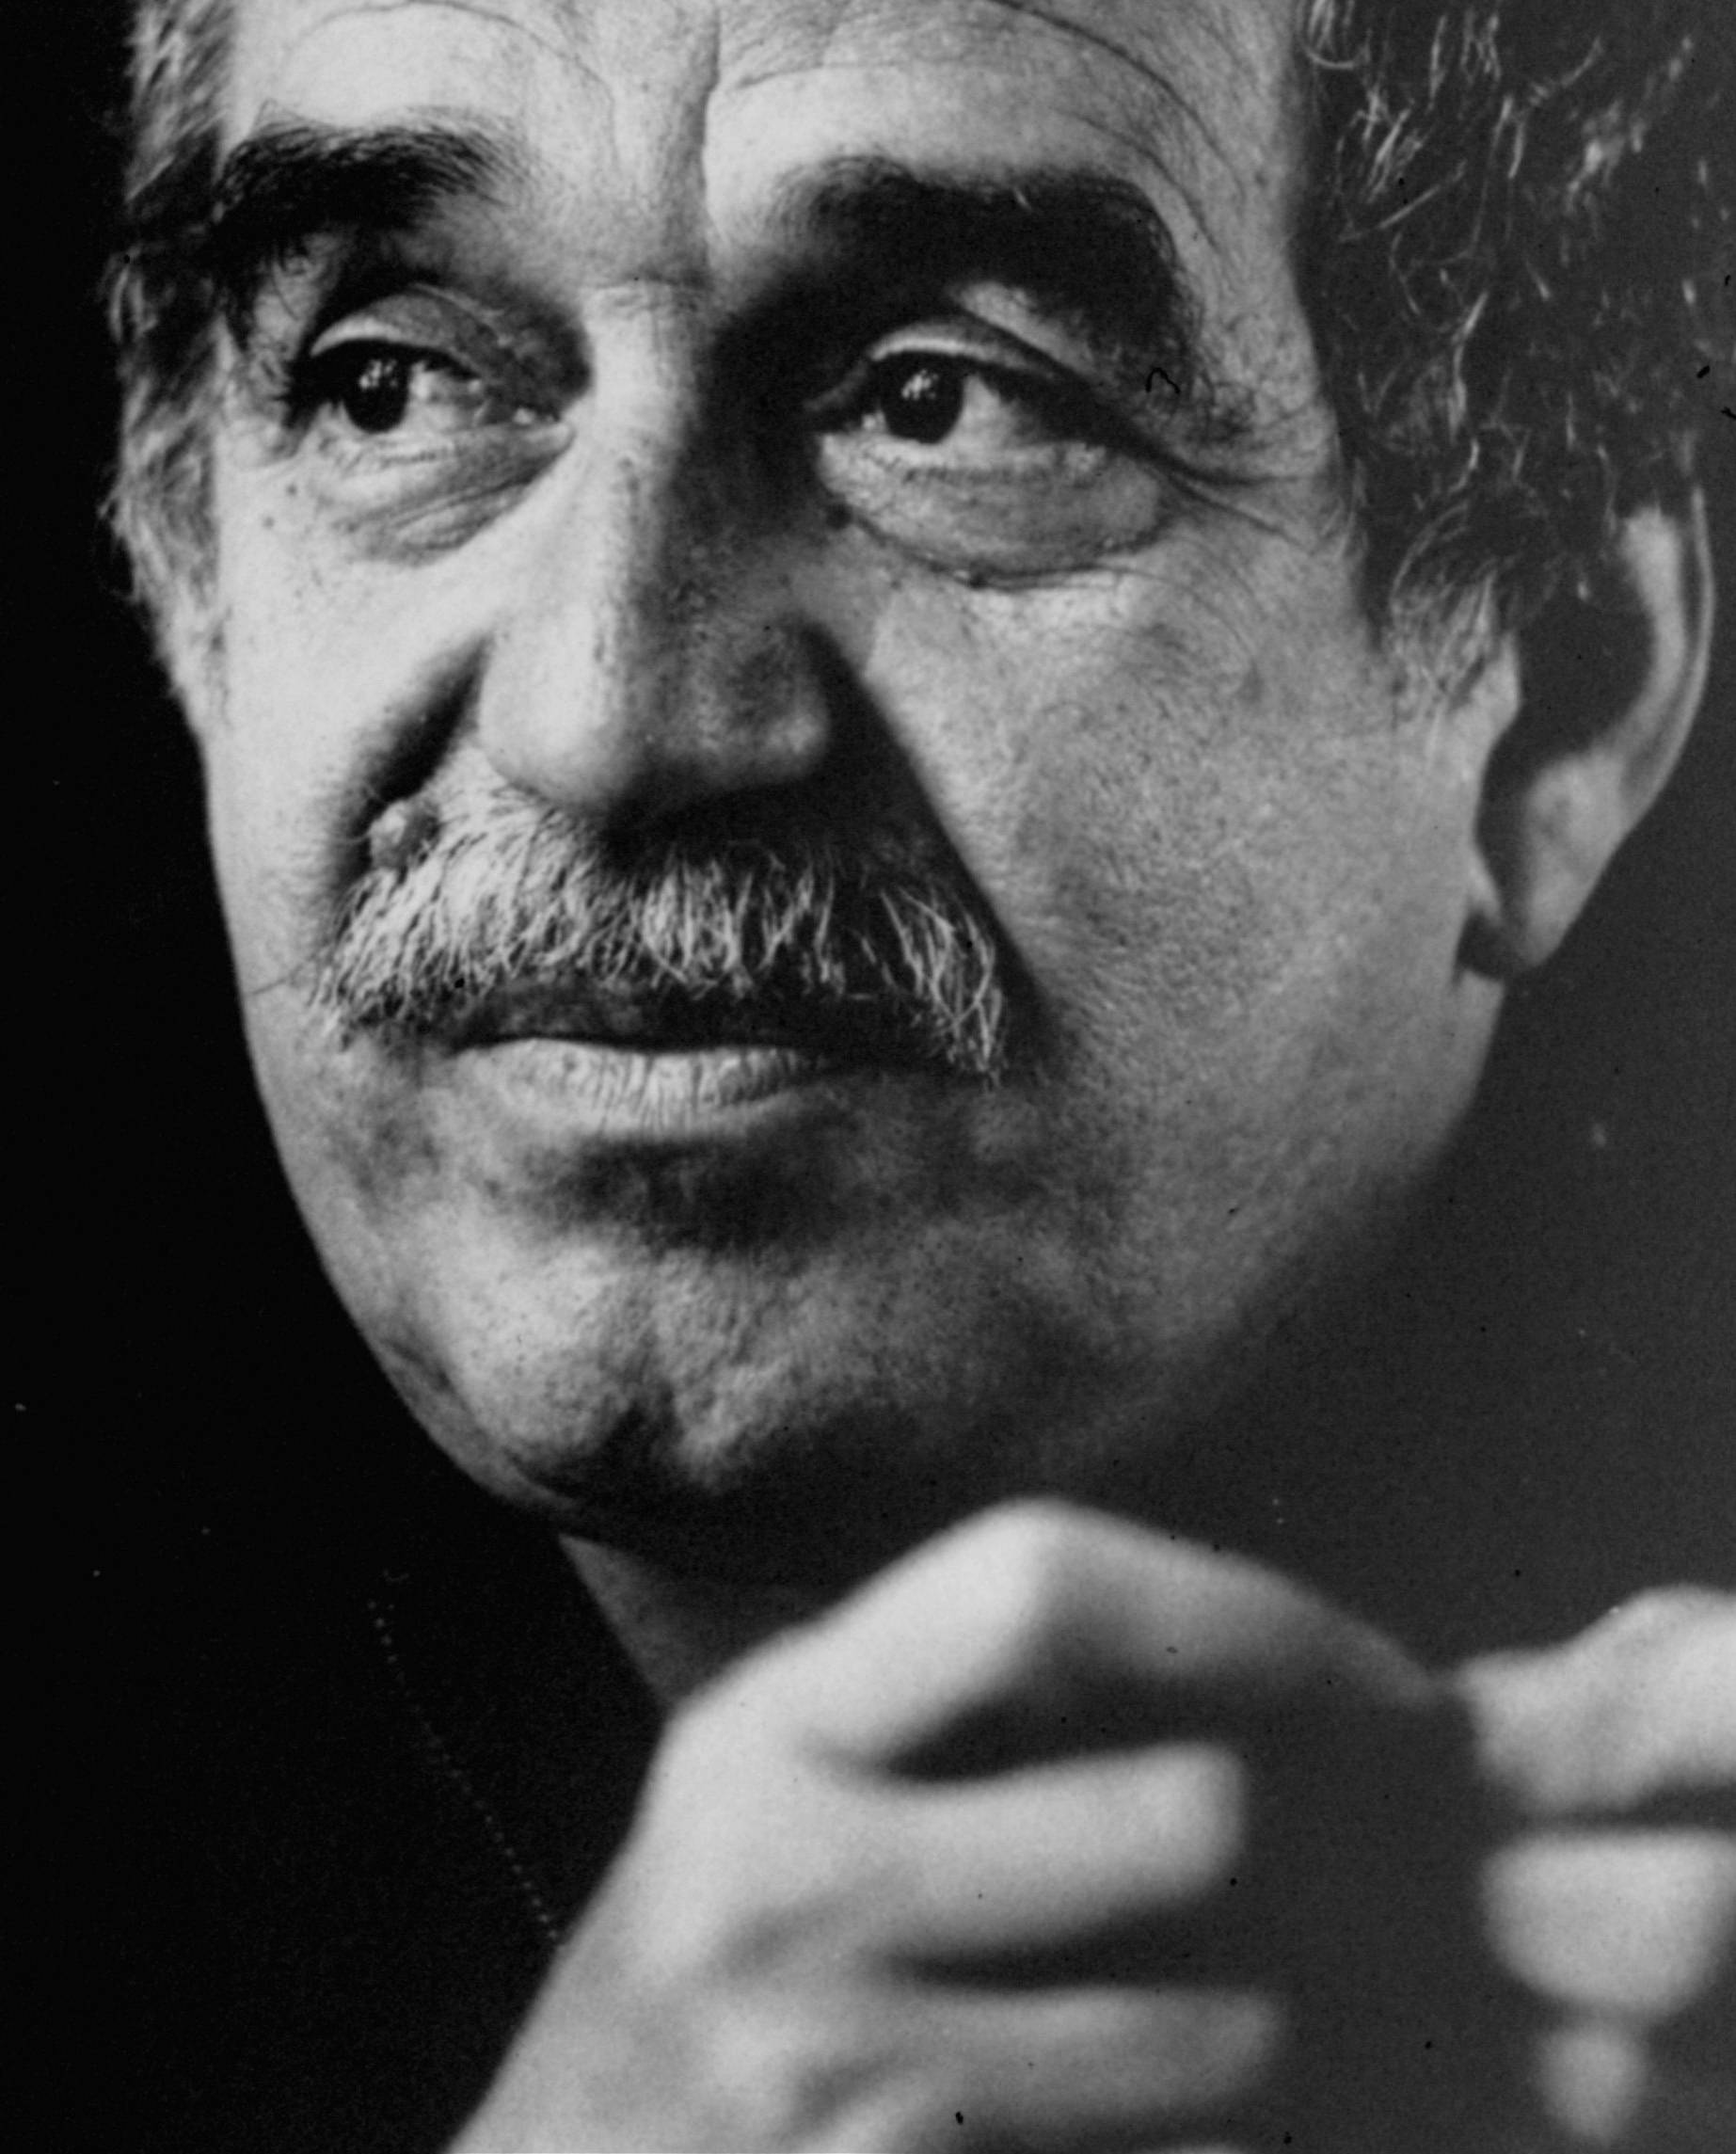 ALTERNATIVE CROP OF XLAT301 - FILE - This undated file photo of Colombian Nobel laureate Gabriel Garcia Marquez is seen in an unknown location. Marquez died Thursday April 17, 2014 at his home in Mexico City. Garcia Marquez's magical realist novels and short stories exposed tens of millions of readers to Latin America's passion, superstition, violence and inequality. (AP Photo/Hamilton, File)